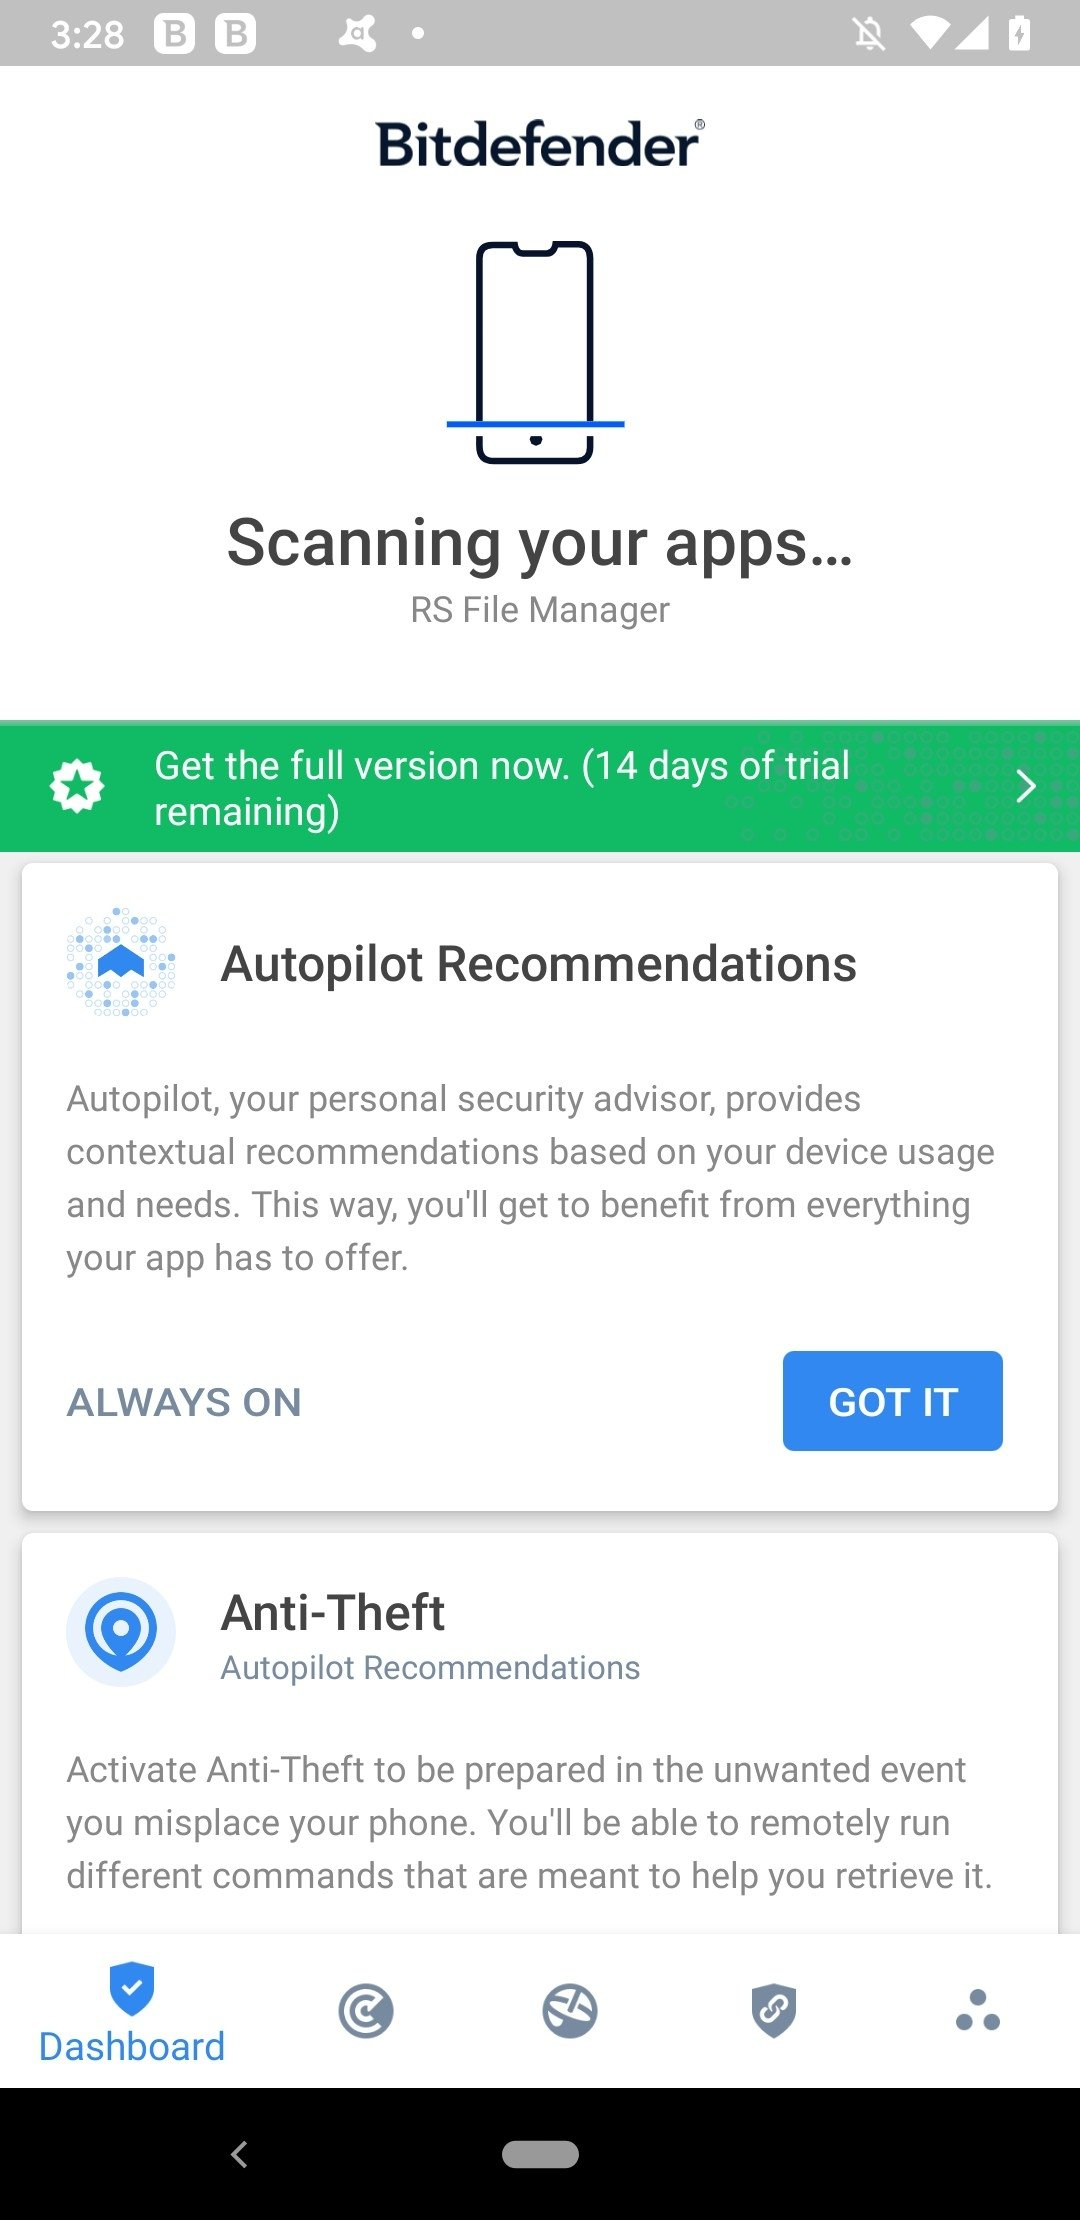 Bitdefender Mobile Security & Antivirus Android image 8